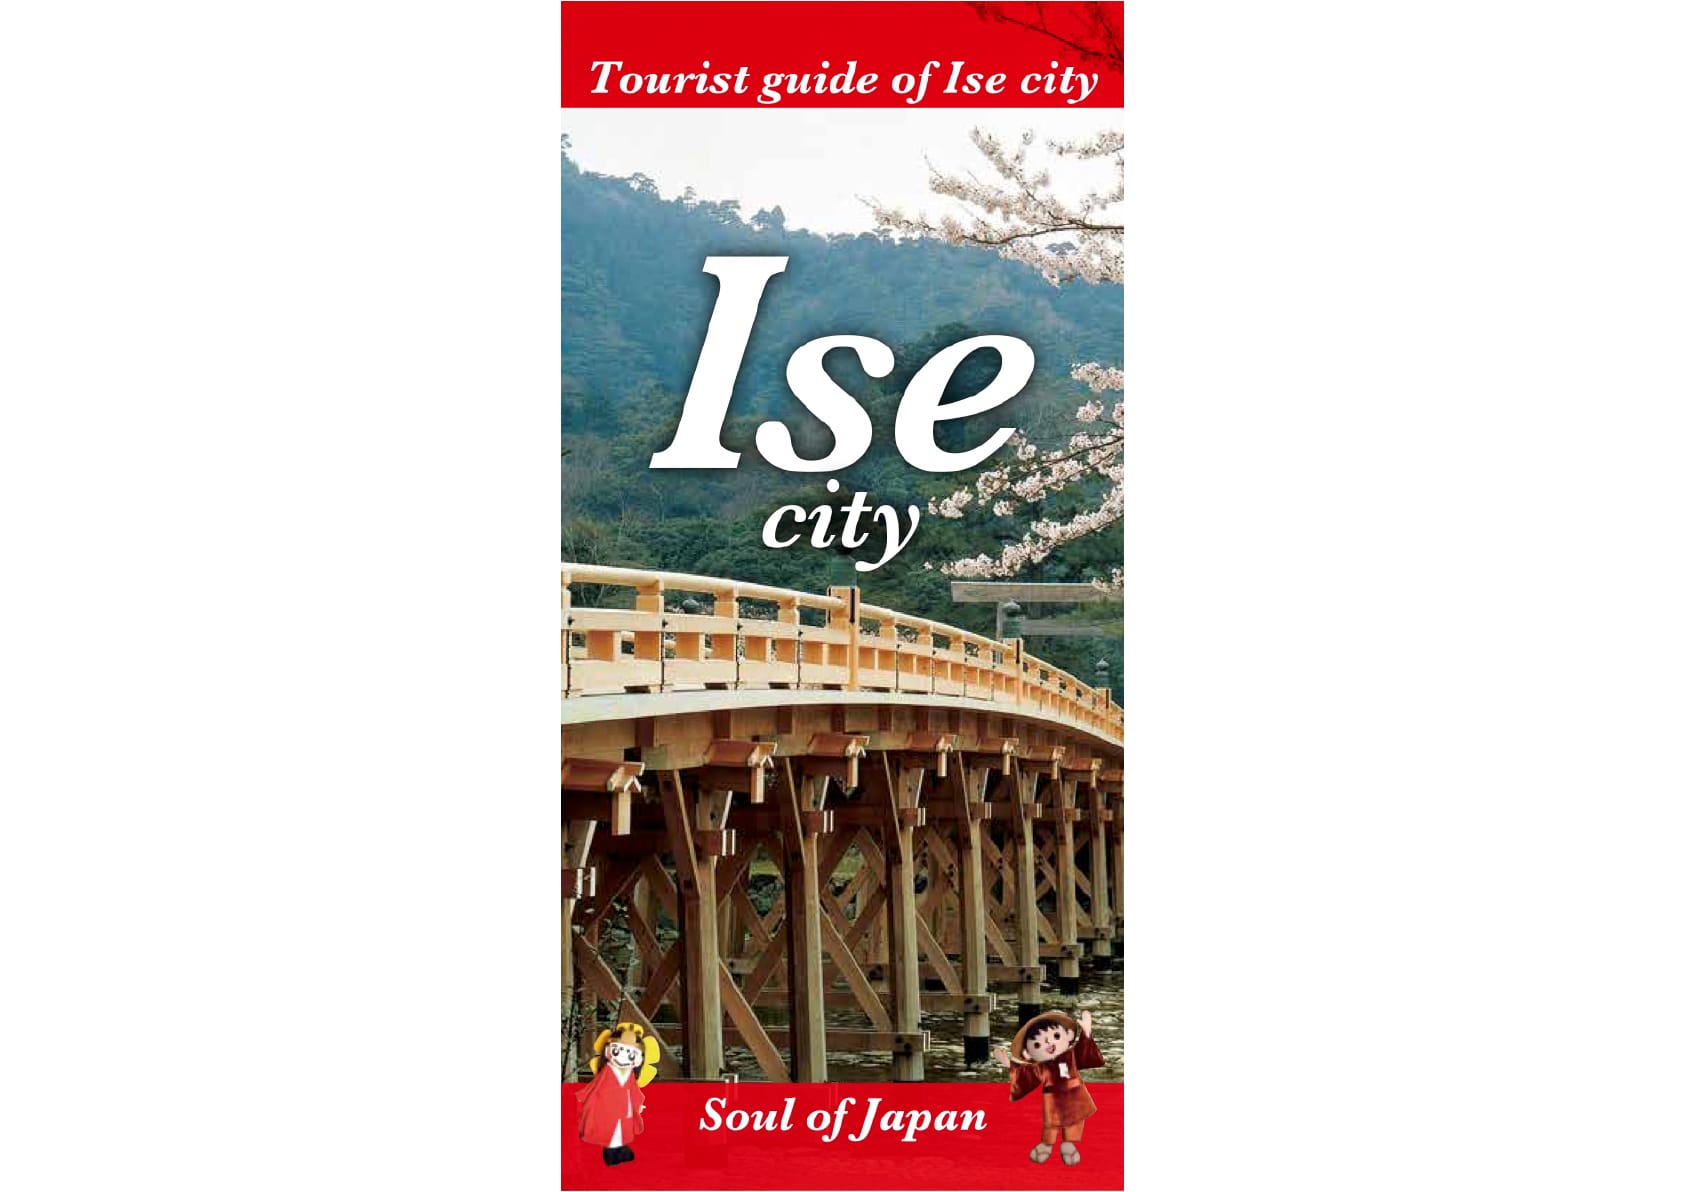 Tourist guide of Ise city